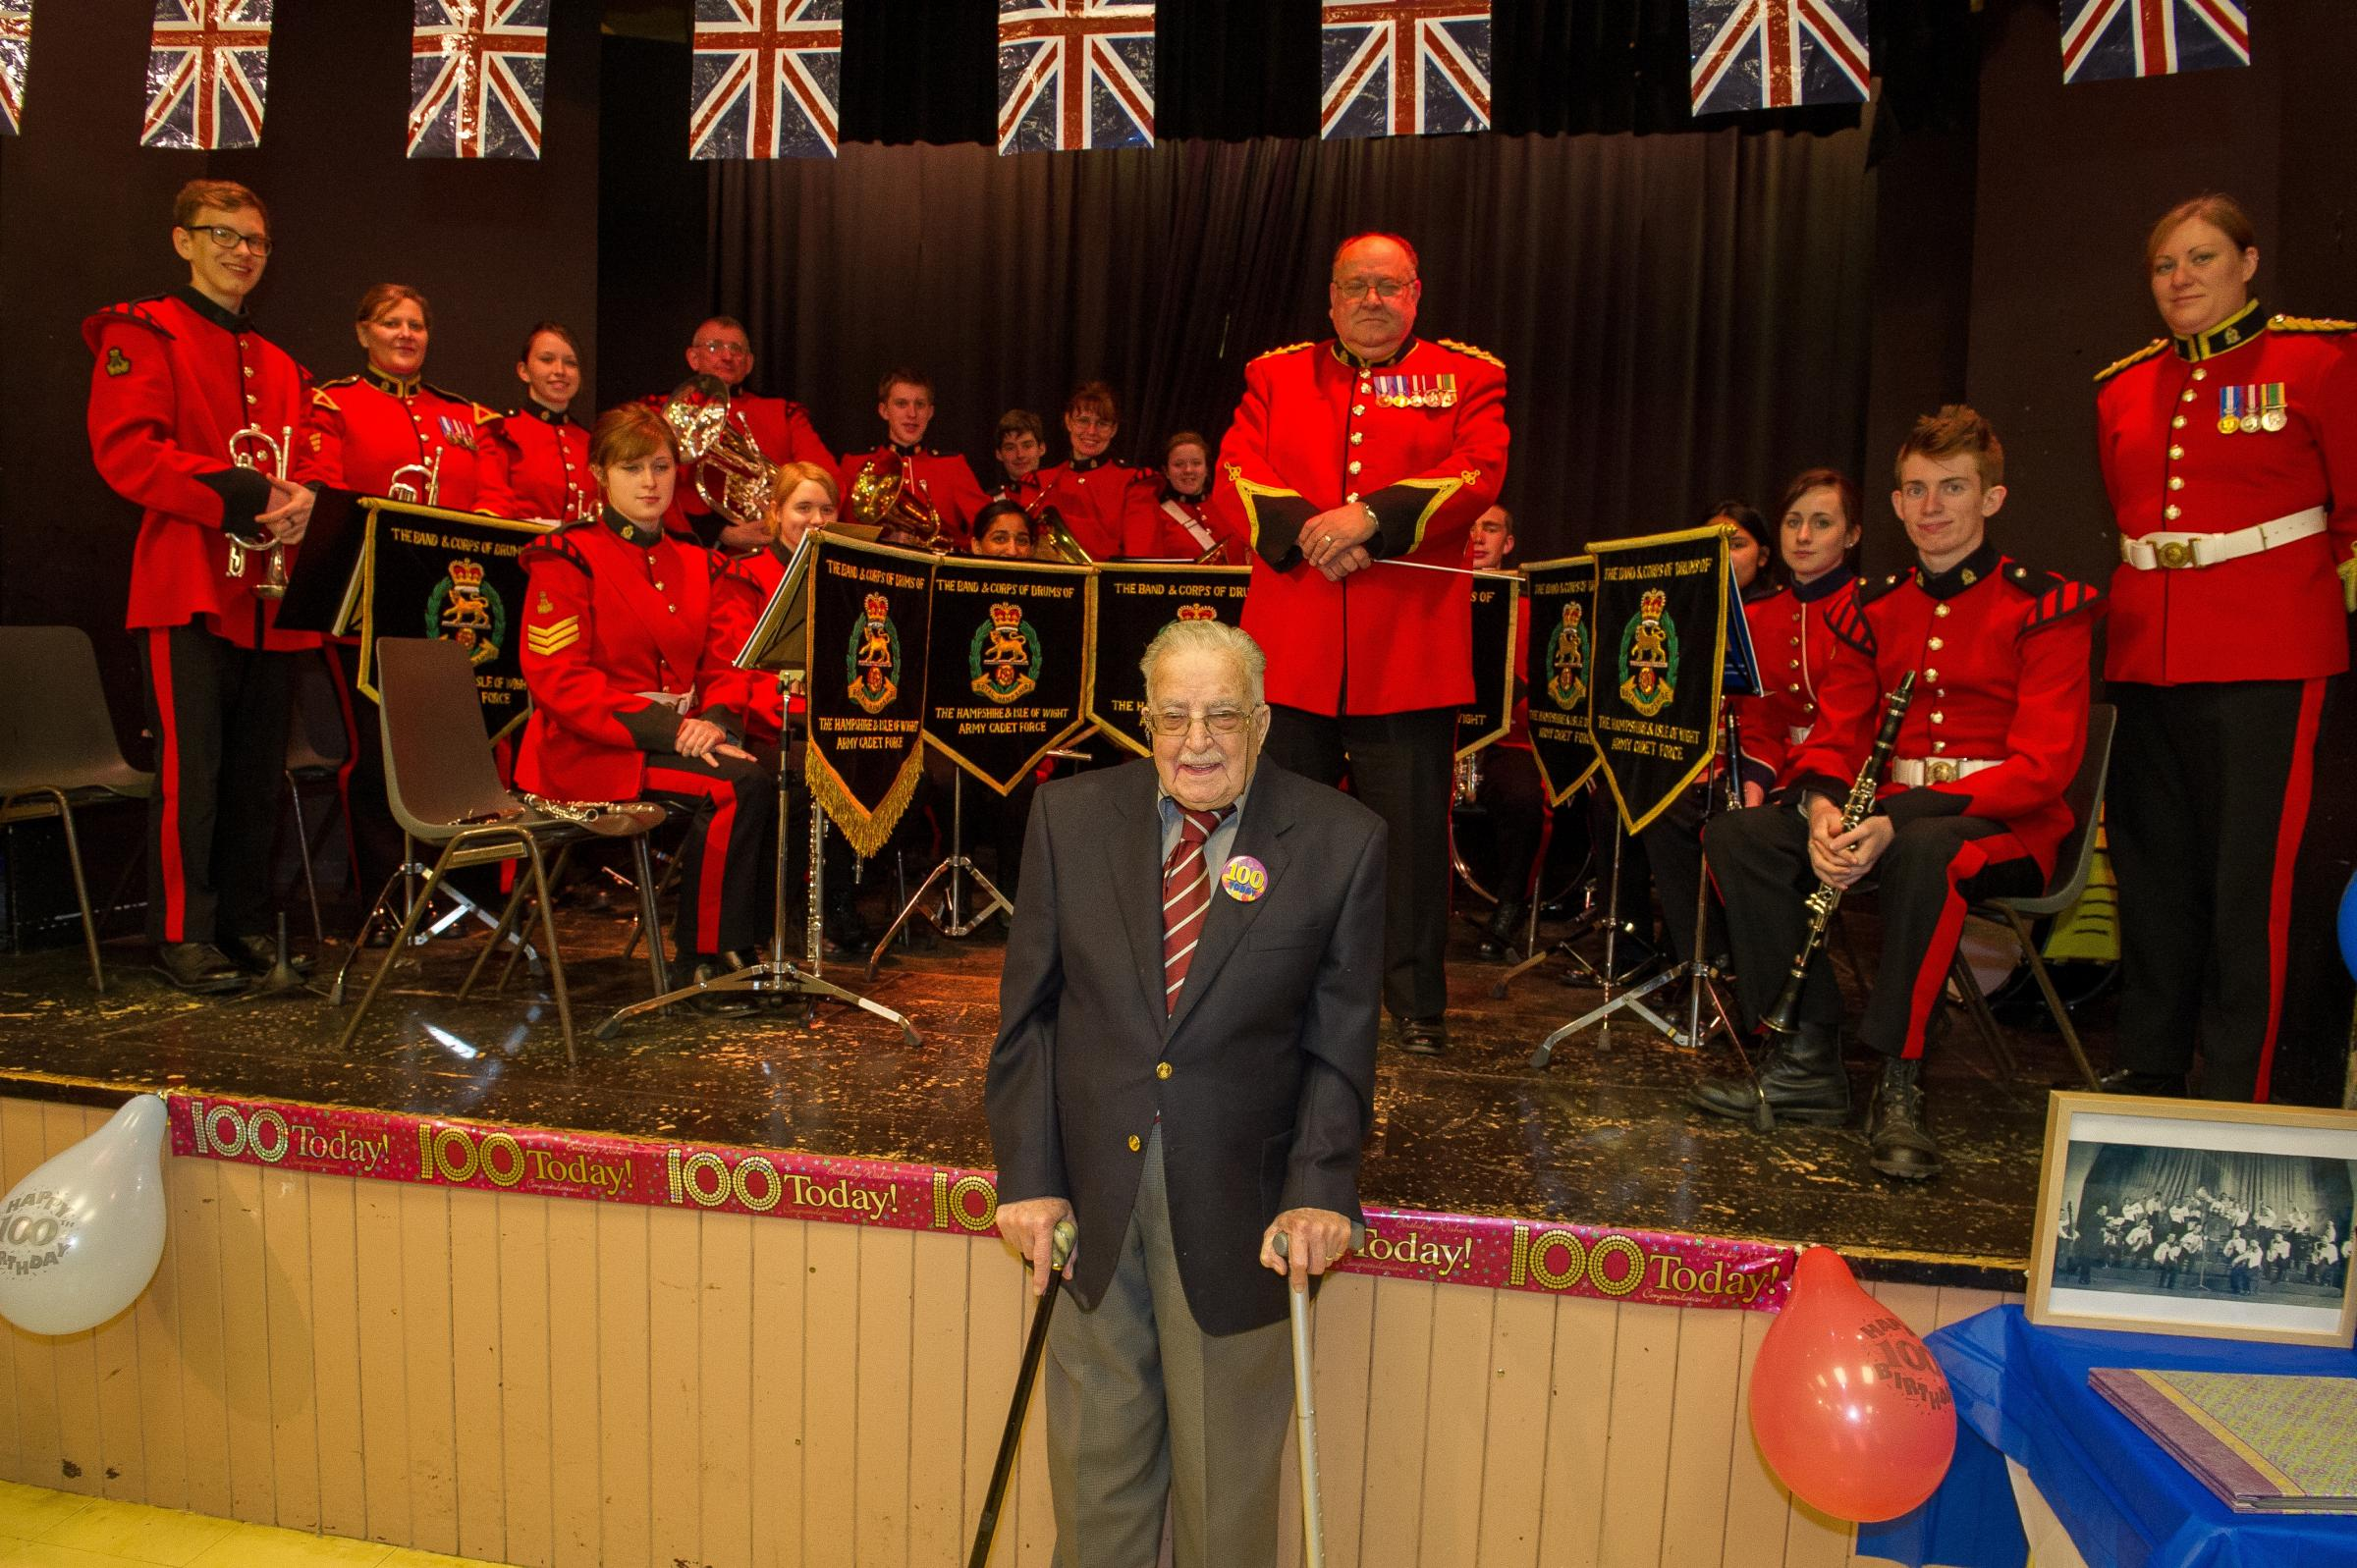 The brass band plays on for centenarian's celebration